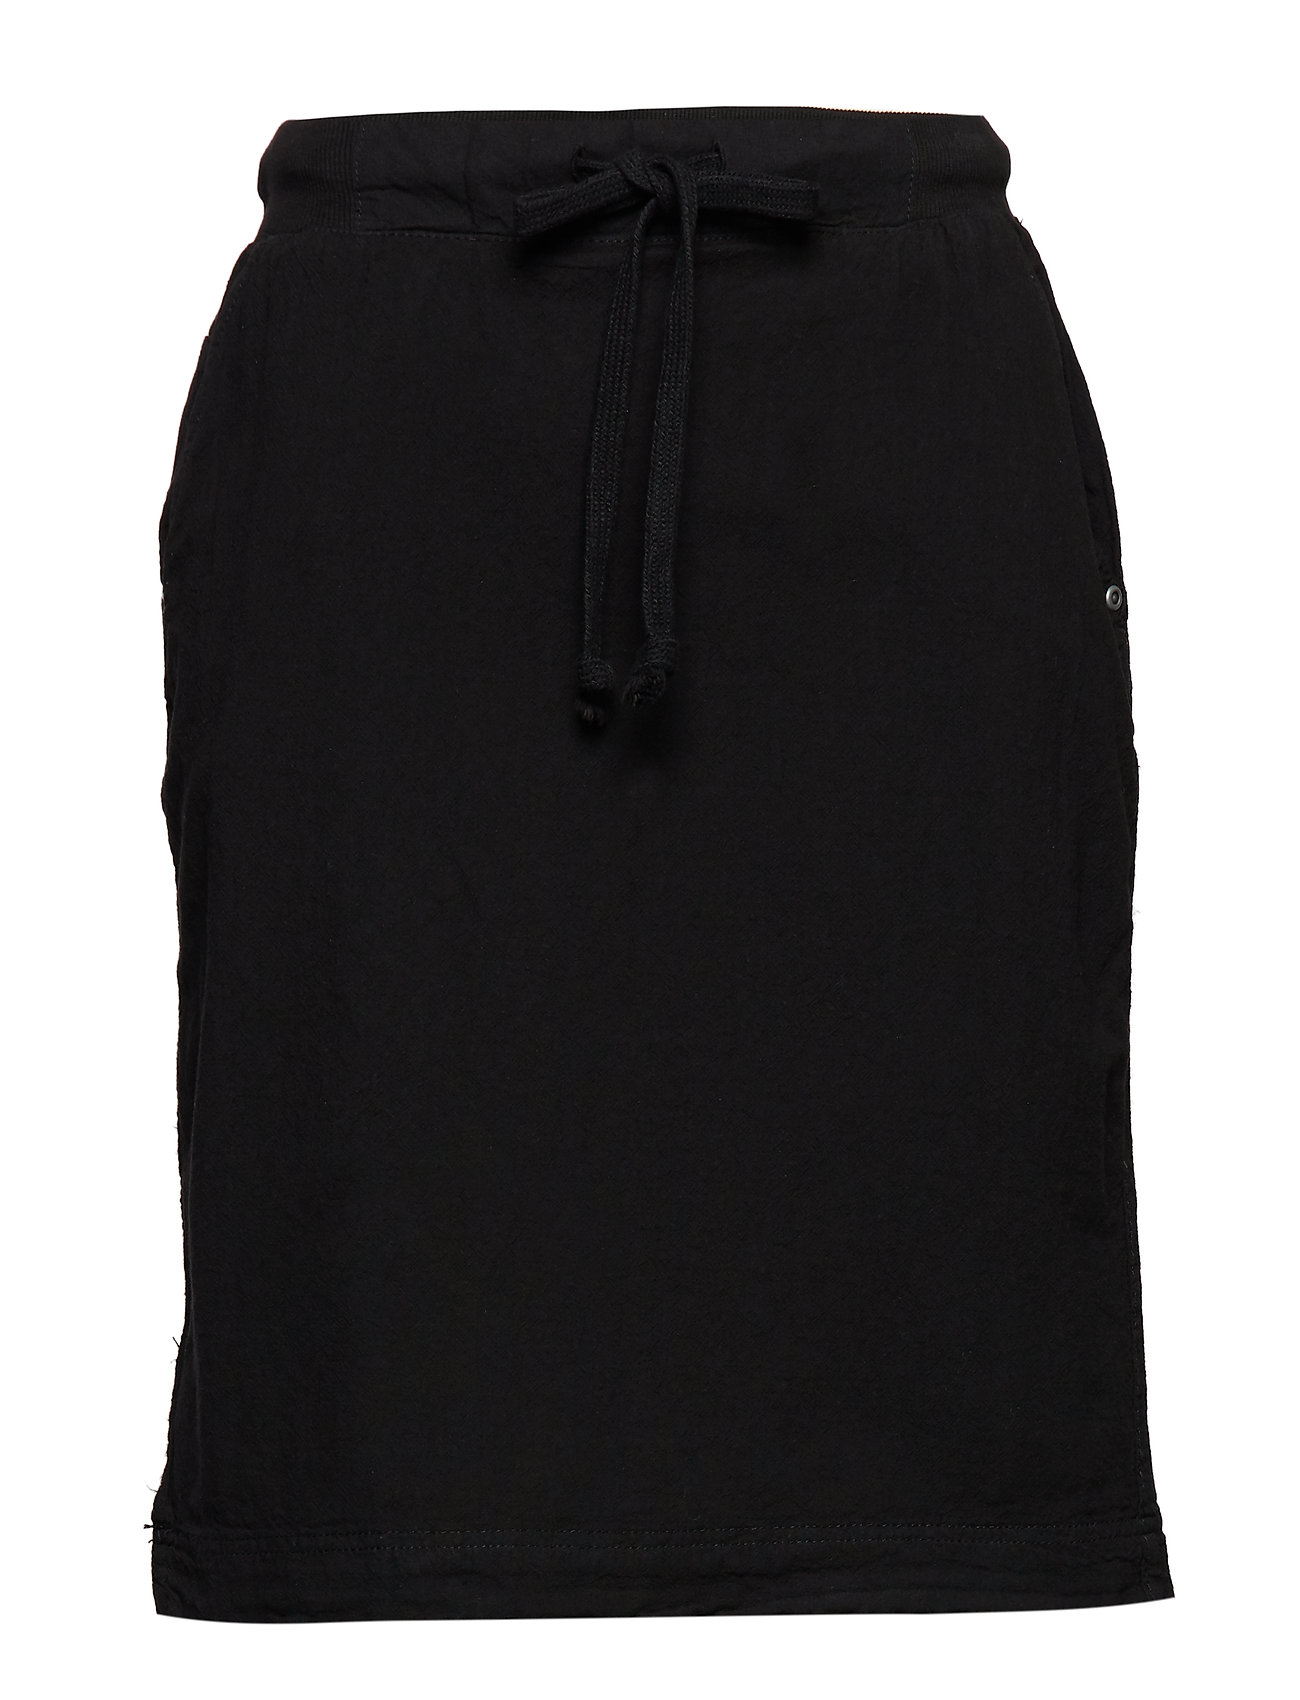 Kaffe Naya Skirt - BLACK DEEP